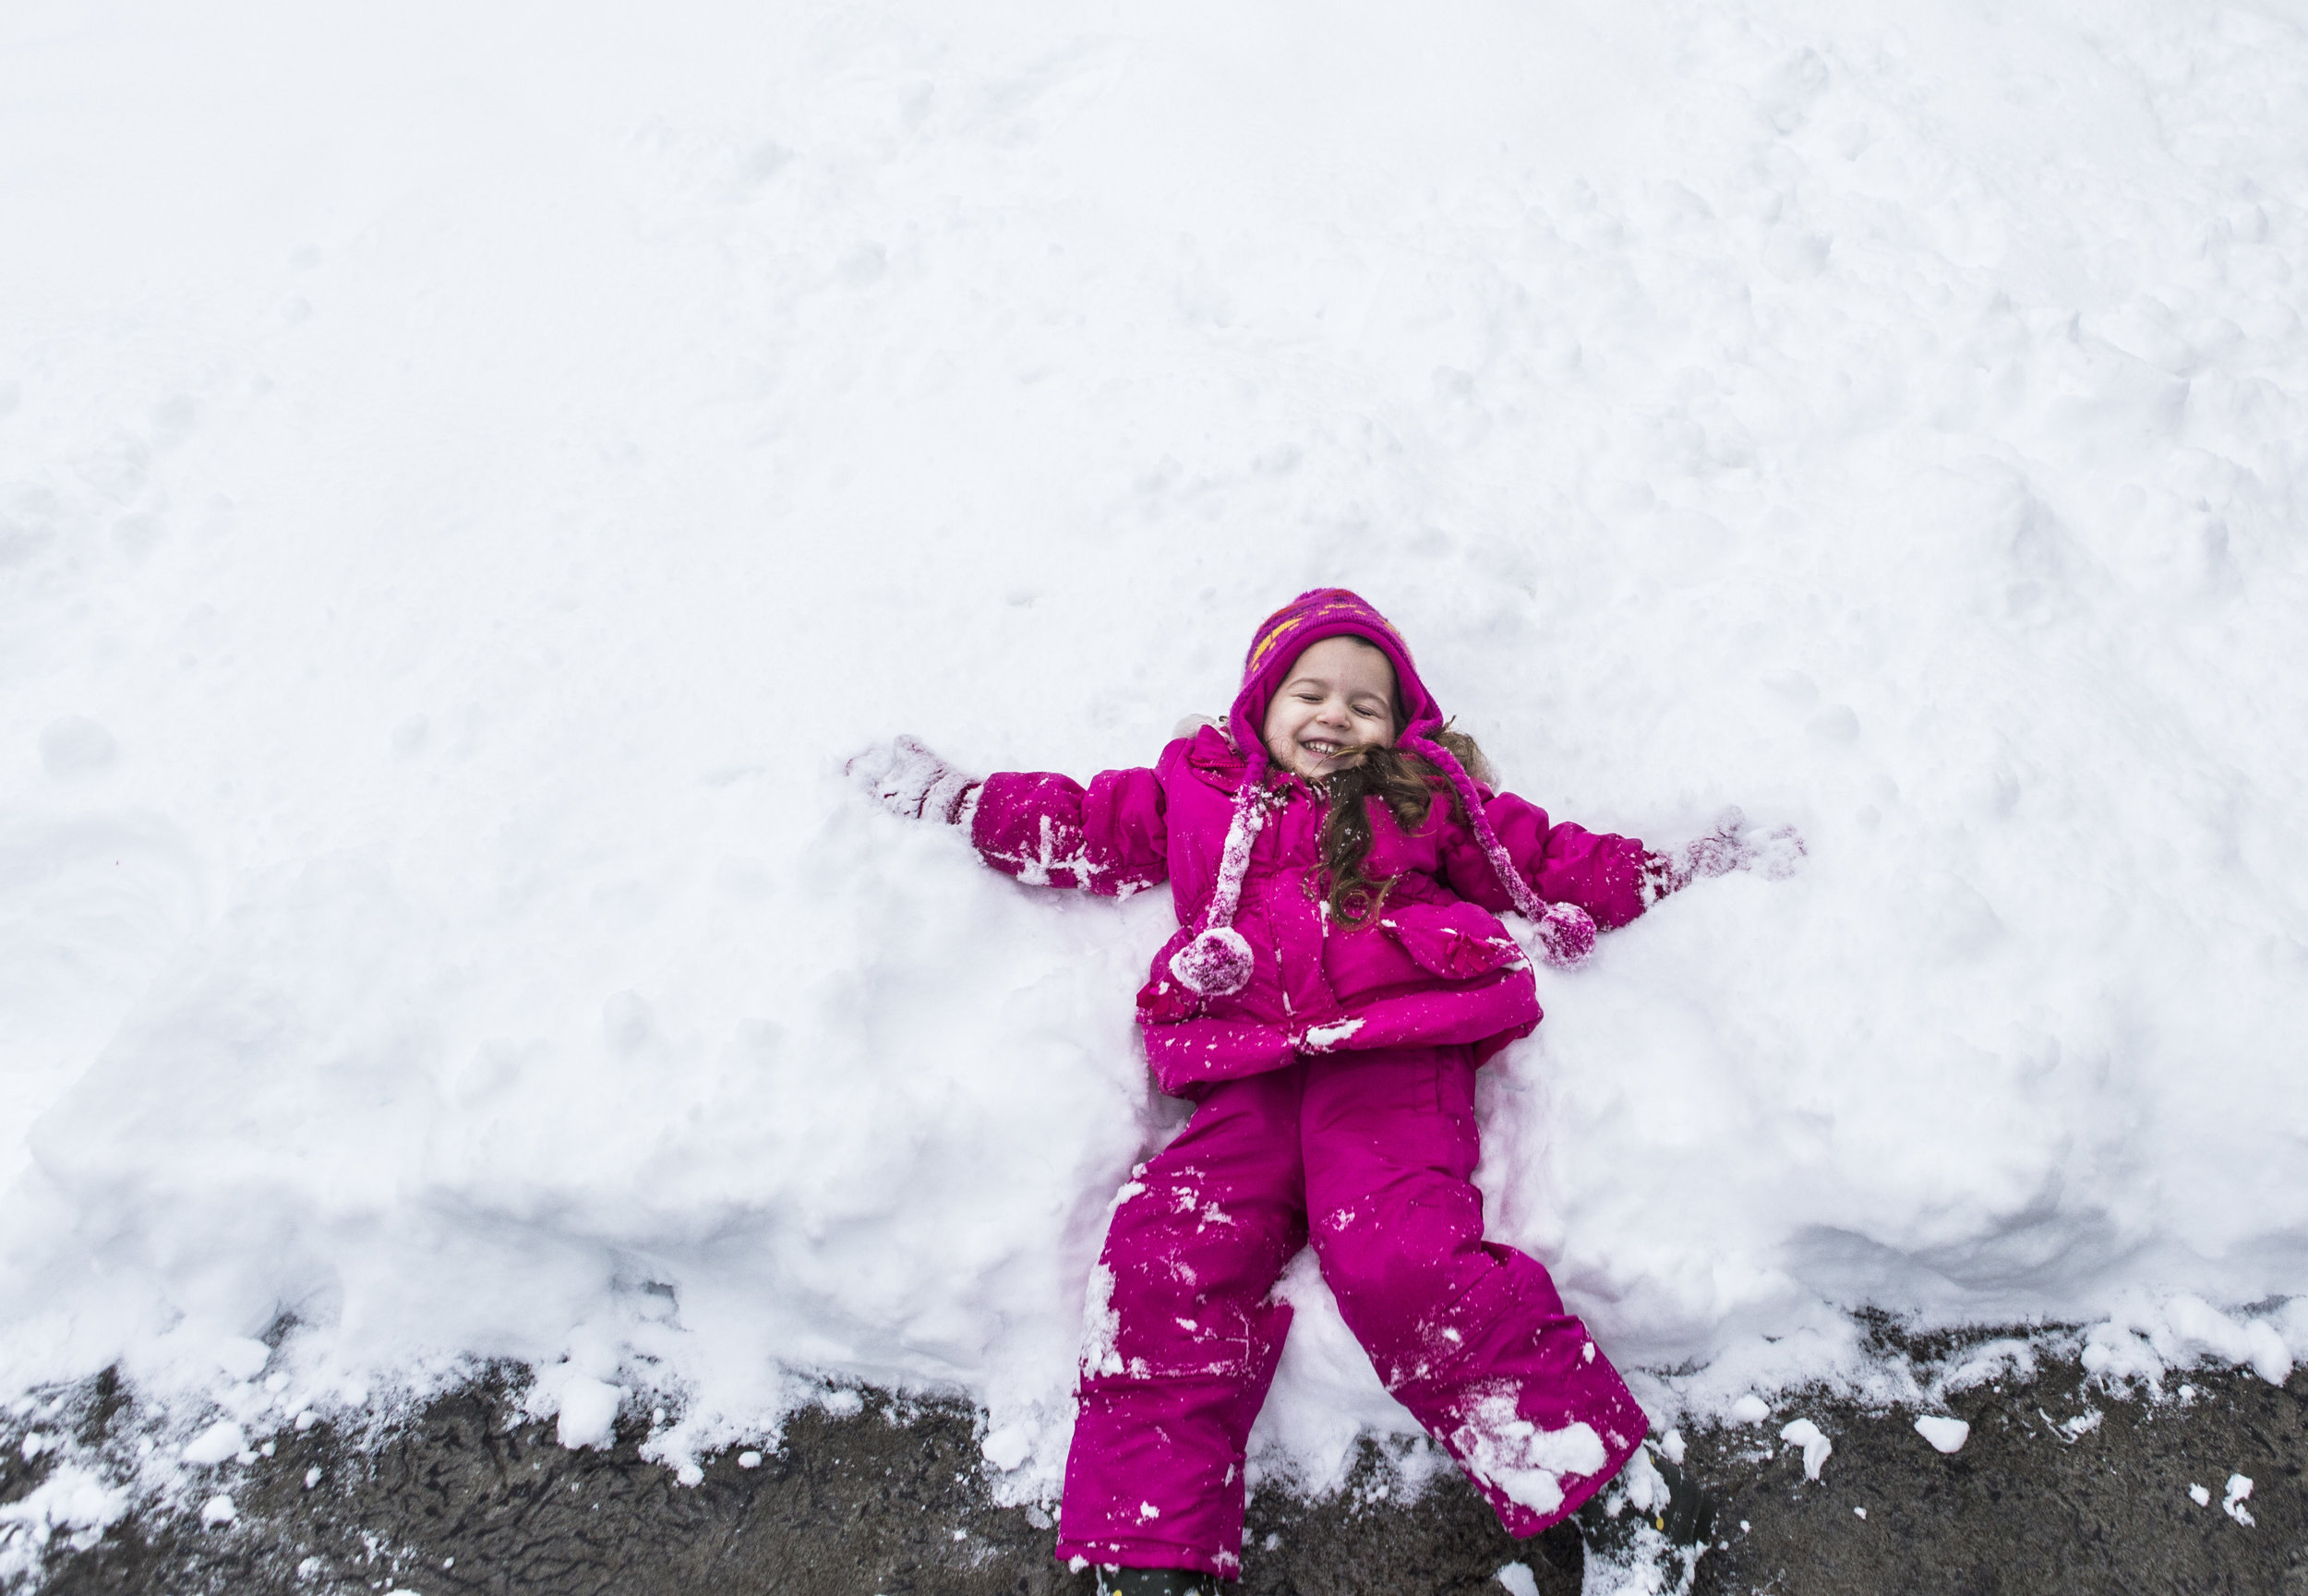 Kaylee Williams, 3, smiles as she makes her first snow angel of the day in the front yard of her family's home on Saturday, Feb. 9, 2019 in Everett, Wa. The Puget Sound area was hit by the a massive snowstorm for the second time in two weeks resulting in upwards of a foot of snow in some areas of Snohomish county.